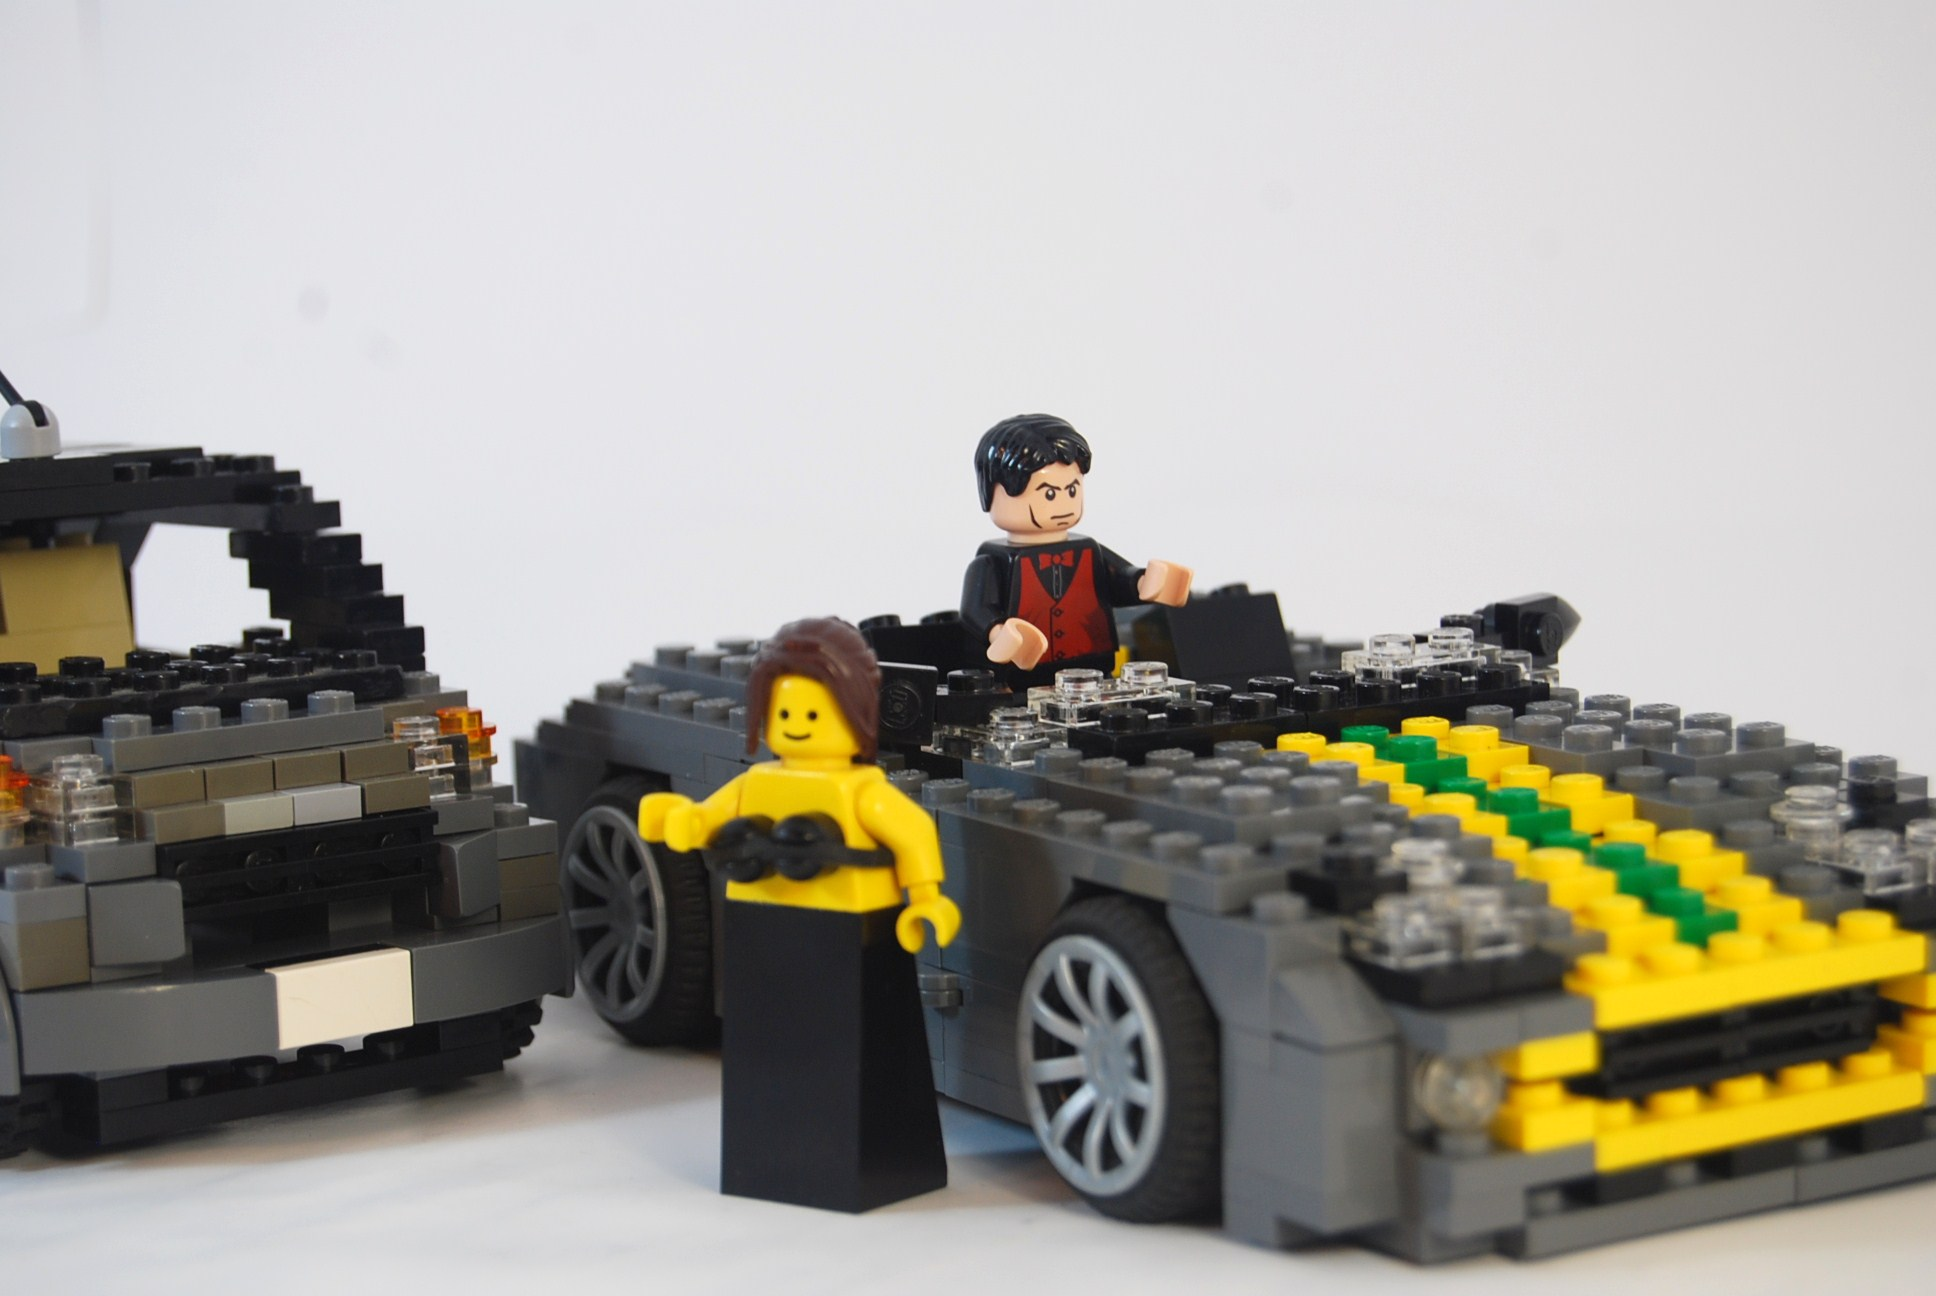 janus_and_natasha_02.jpg